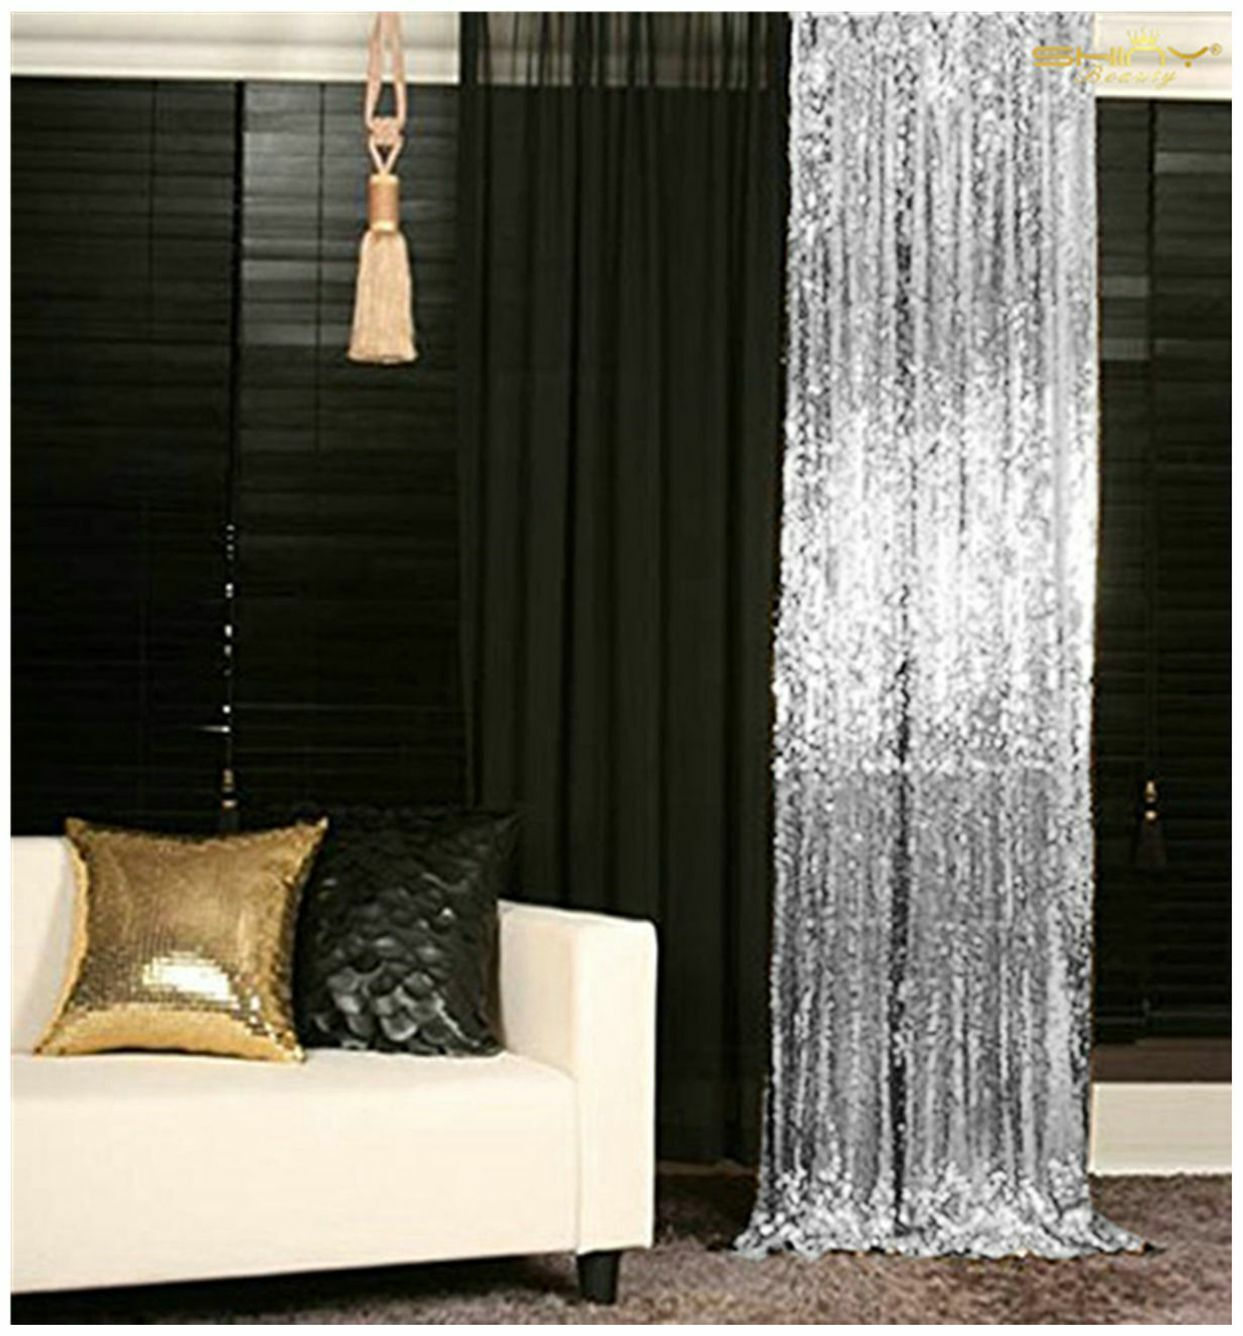 Sequin Curtains Backdrop 2 Panels glitter backdrop for youtu